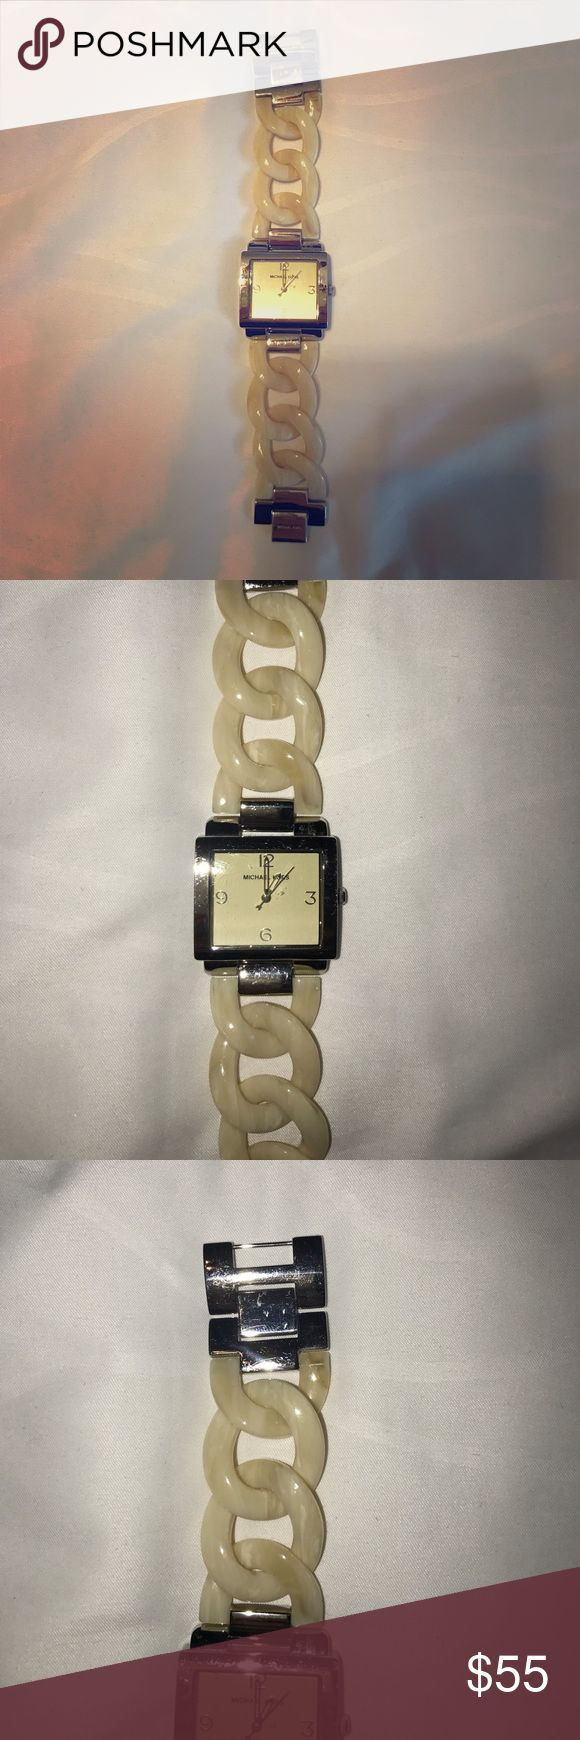 Michael Kors tortoise shell watch Beautiful Michael Kors tortoise shell watch. Good condition. Battery needs to be replaced. Michael Kors Accessories Watches